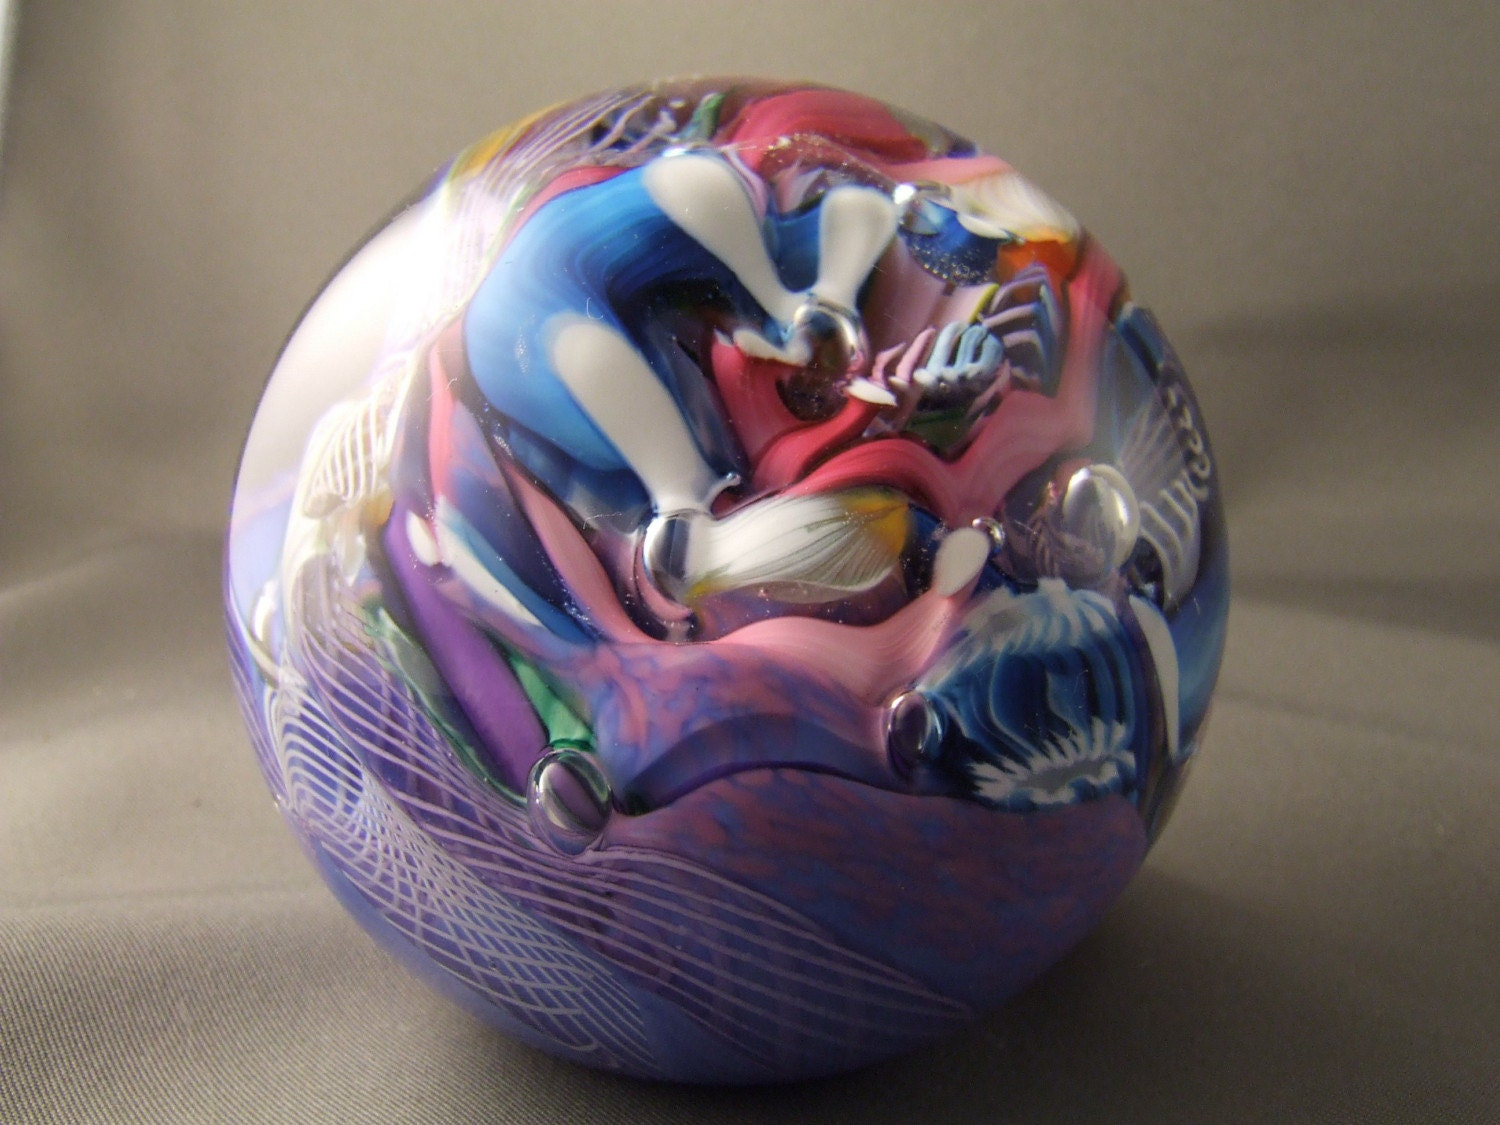 Handblown glass paperweight - Latticino cane - murrini - Mentuck art glass